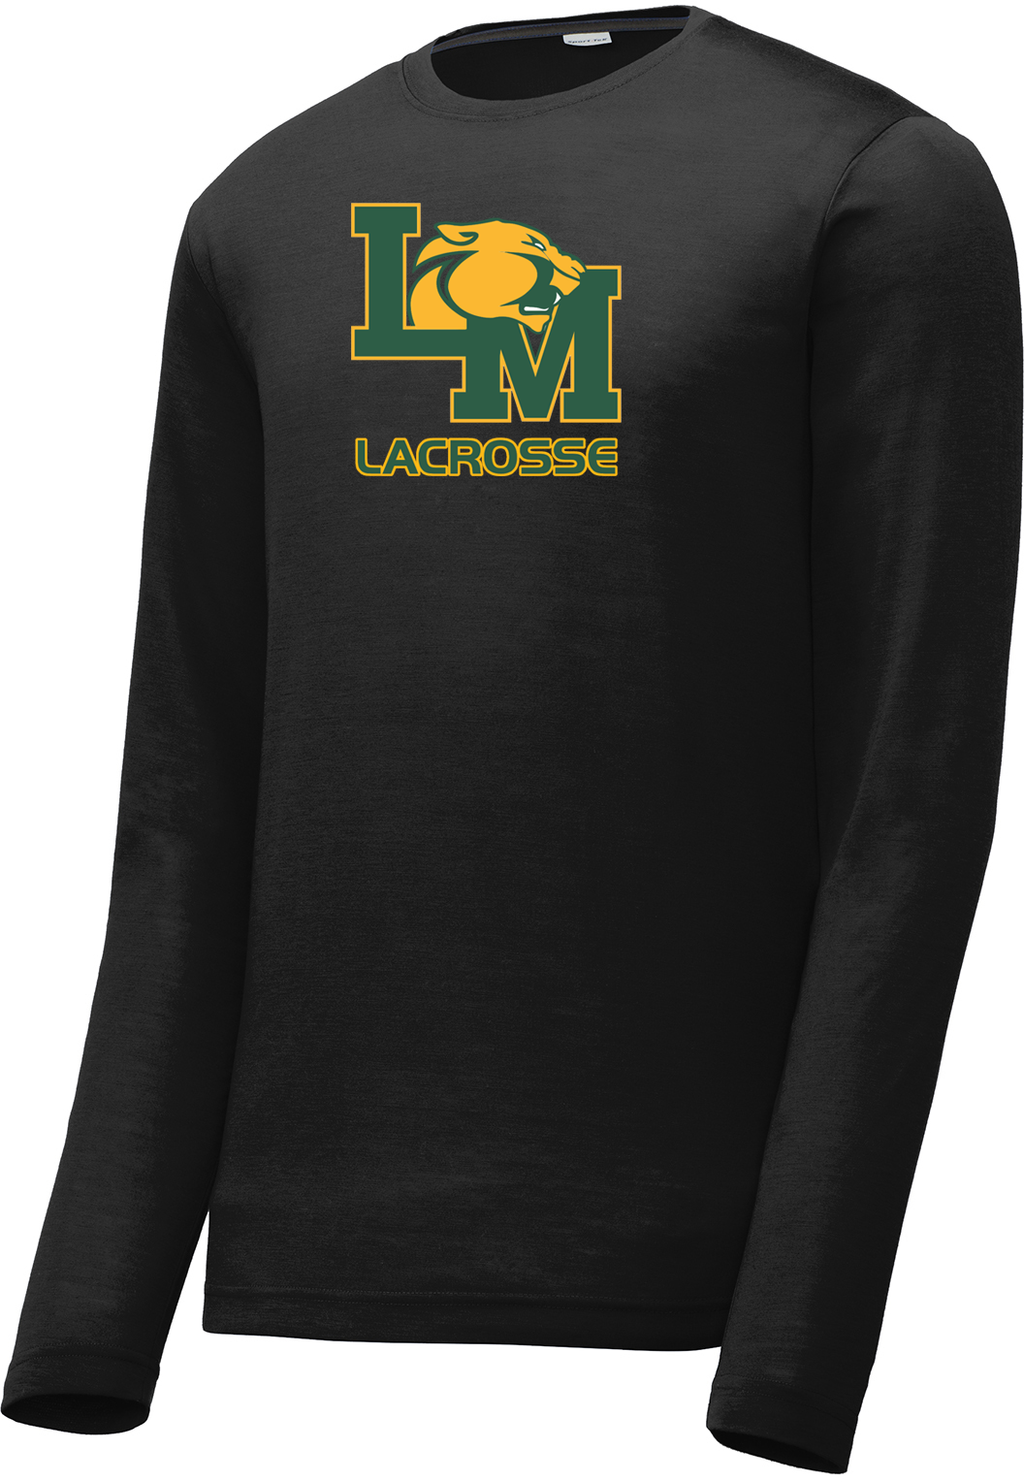 Little Miami Lacrosse Black Long Sleeve CottonTouch Performance Shirt